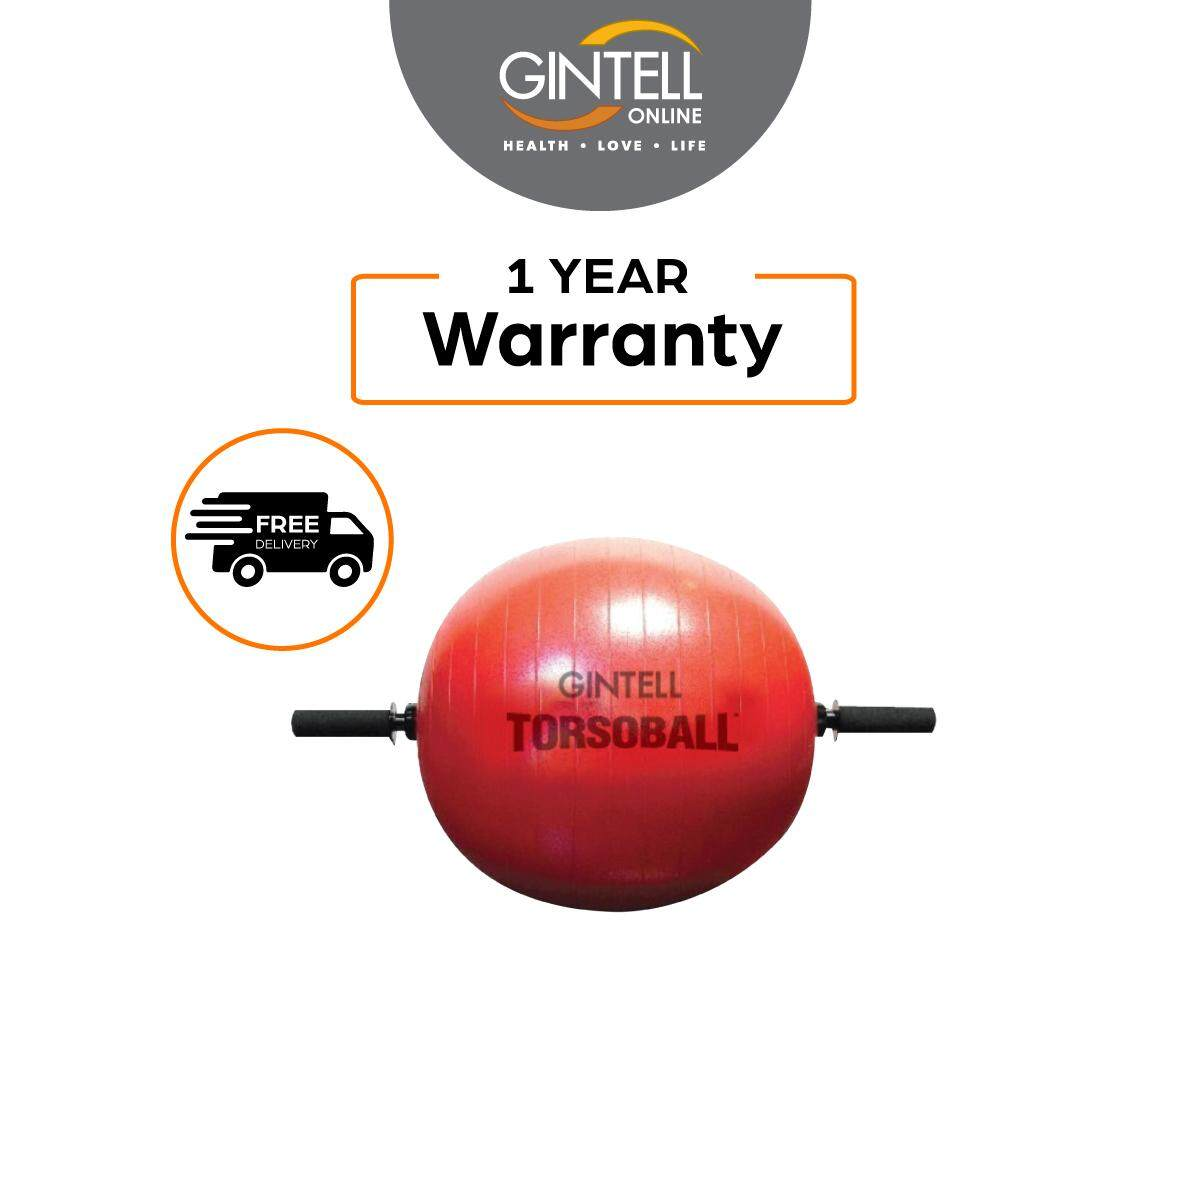 GINTELL Torsoball Total Body Training System